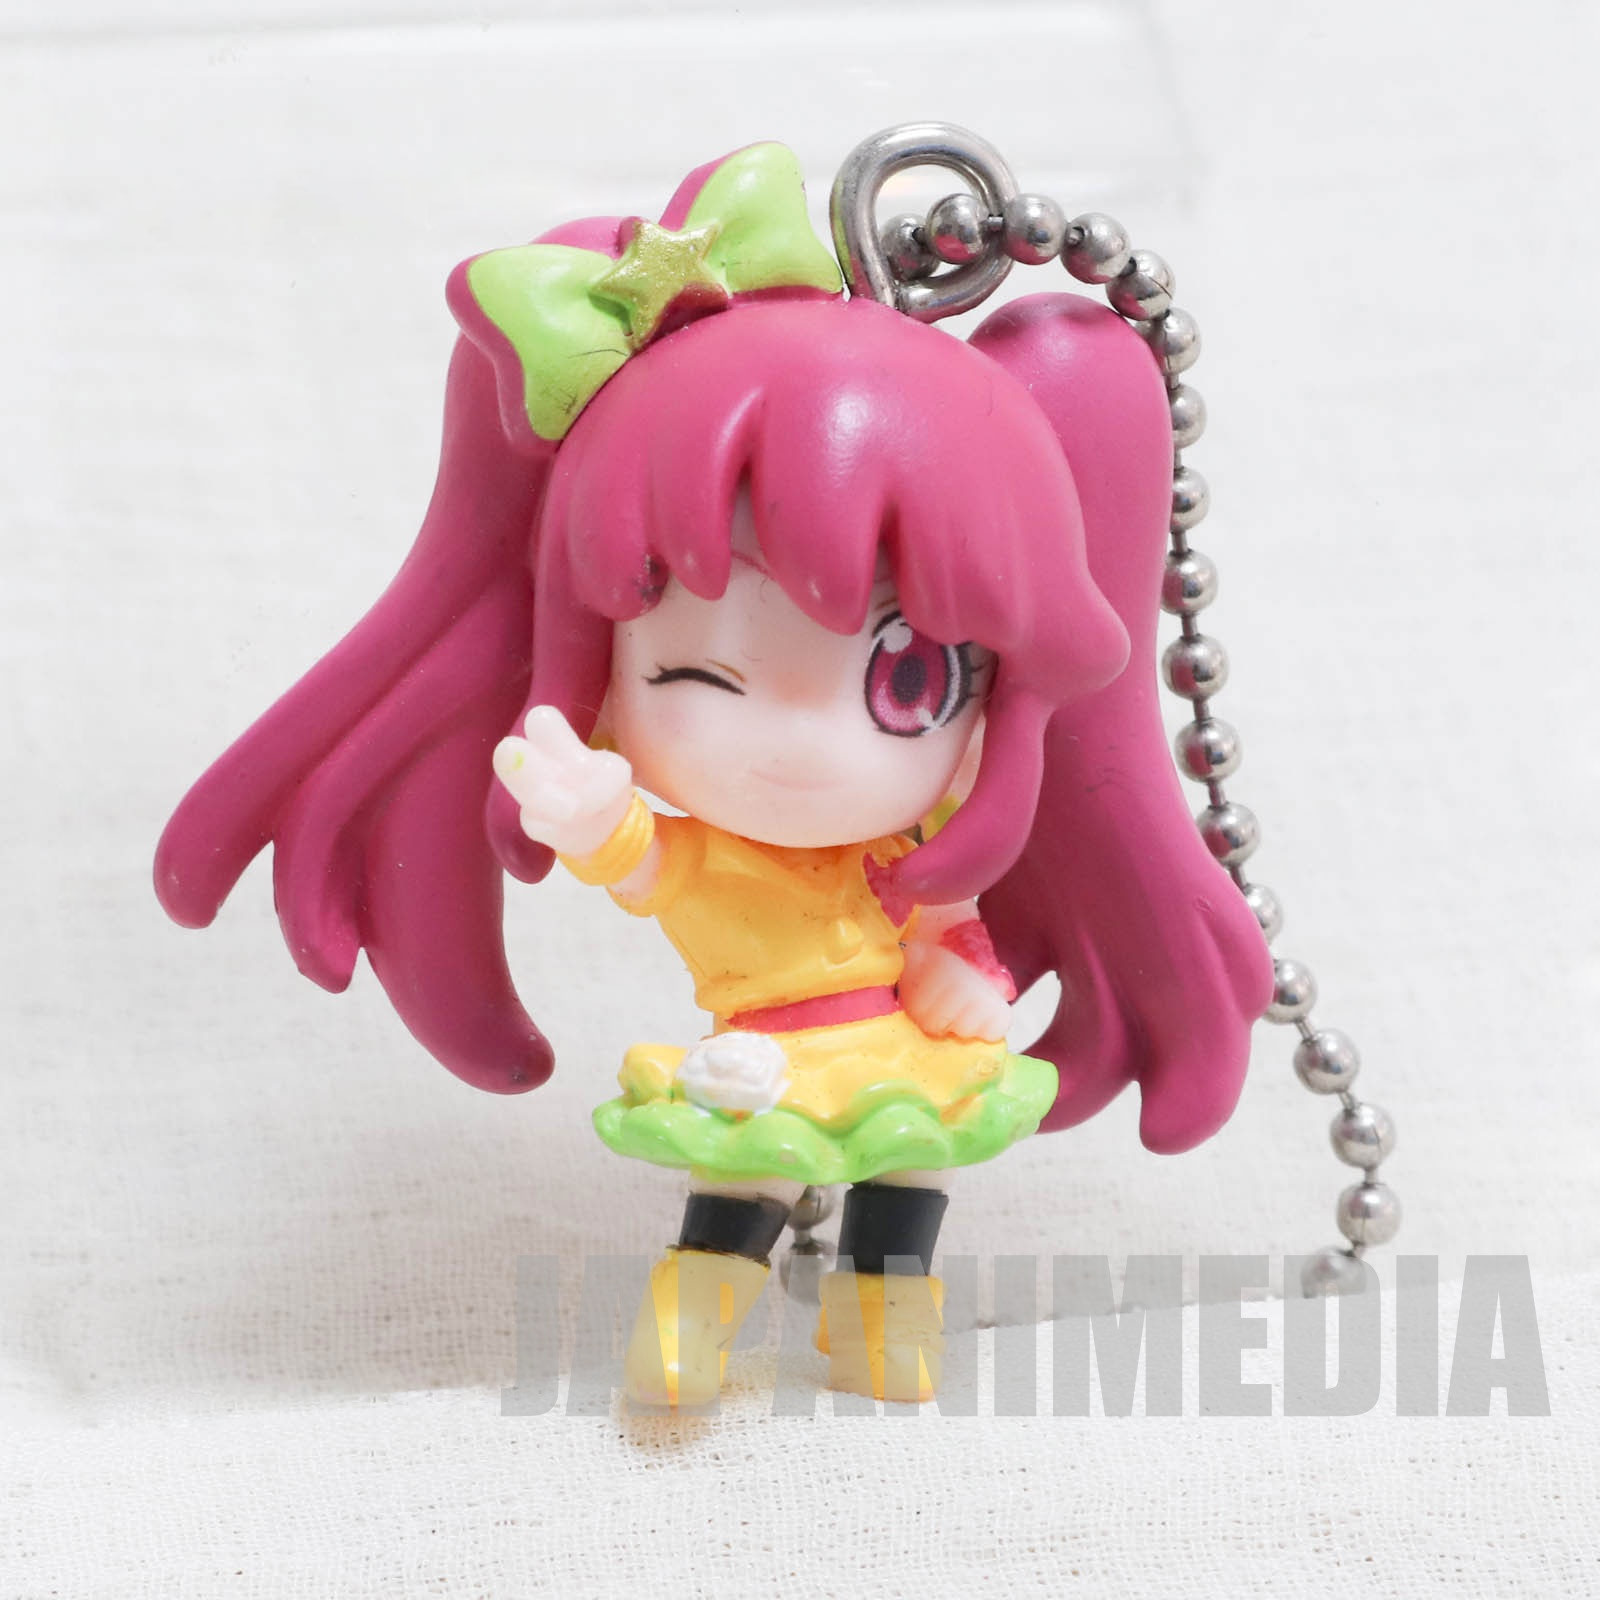 HappinessCharge PreCure! Cure Lovely  Lollipop hip hop ver. Kawa Run Run Swing Figure Ball keychain JAPAN ANIME